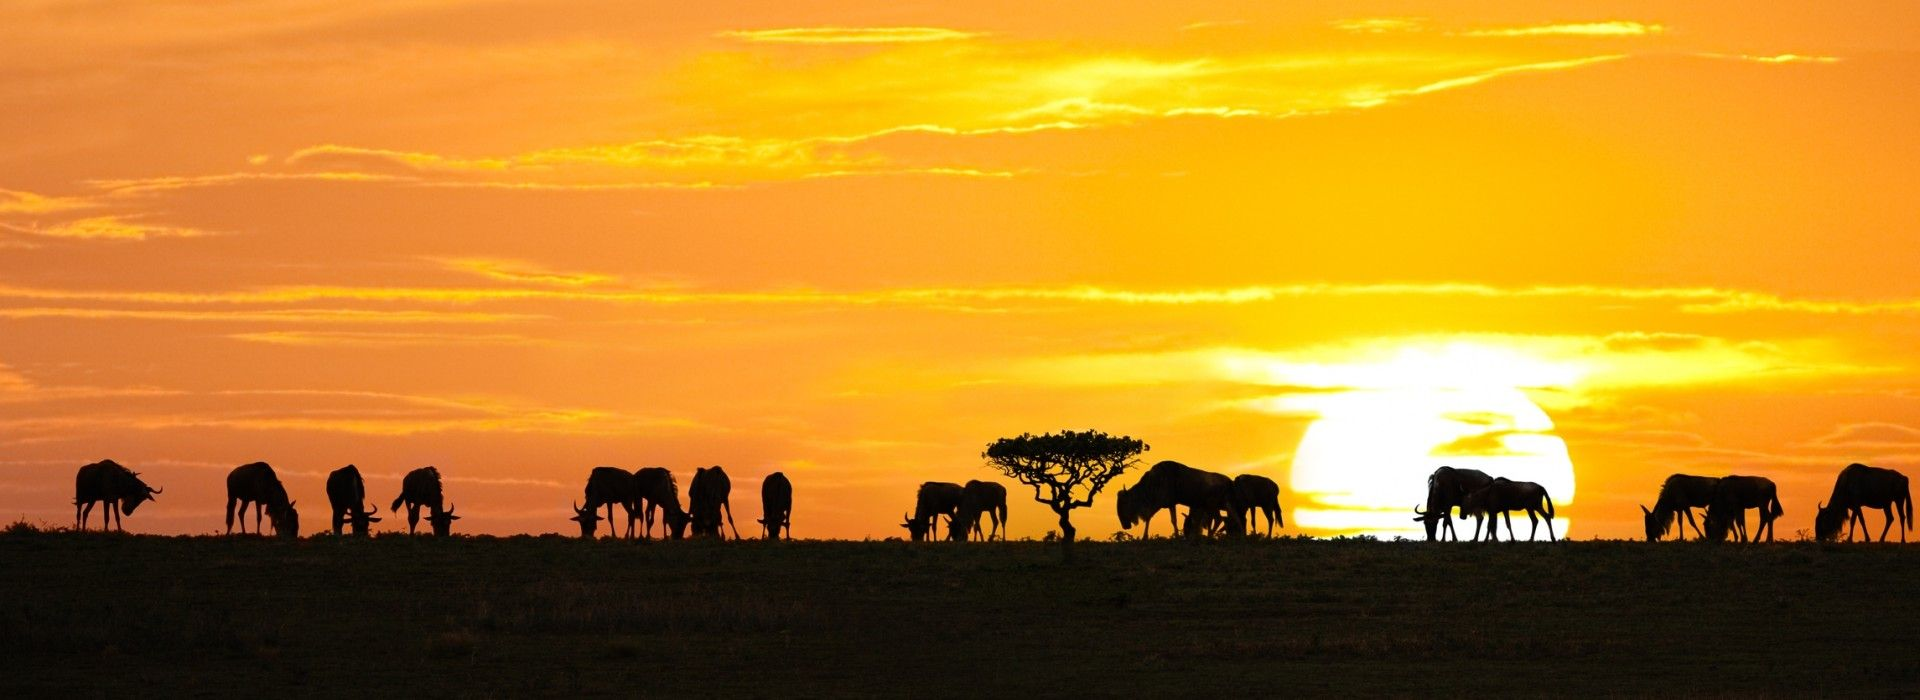 Explorer Tours in Tanzania Safari Parks